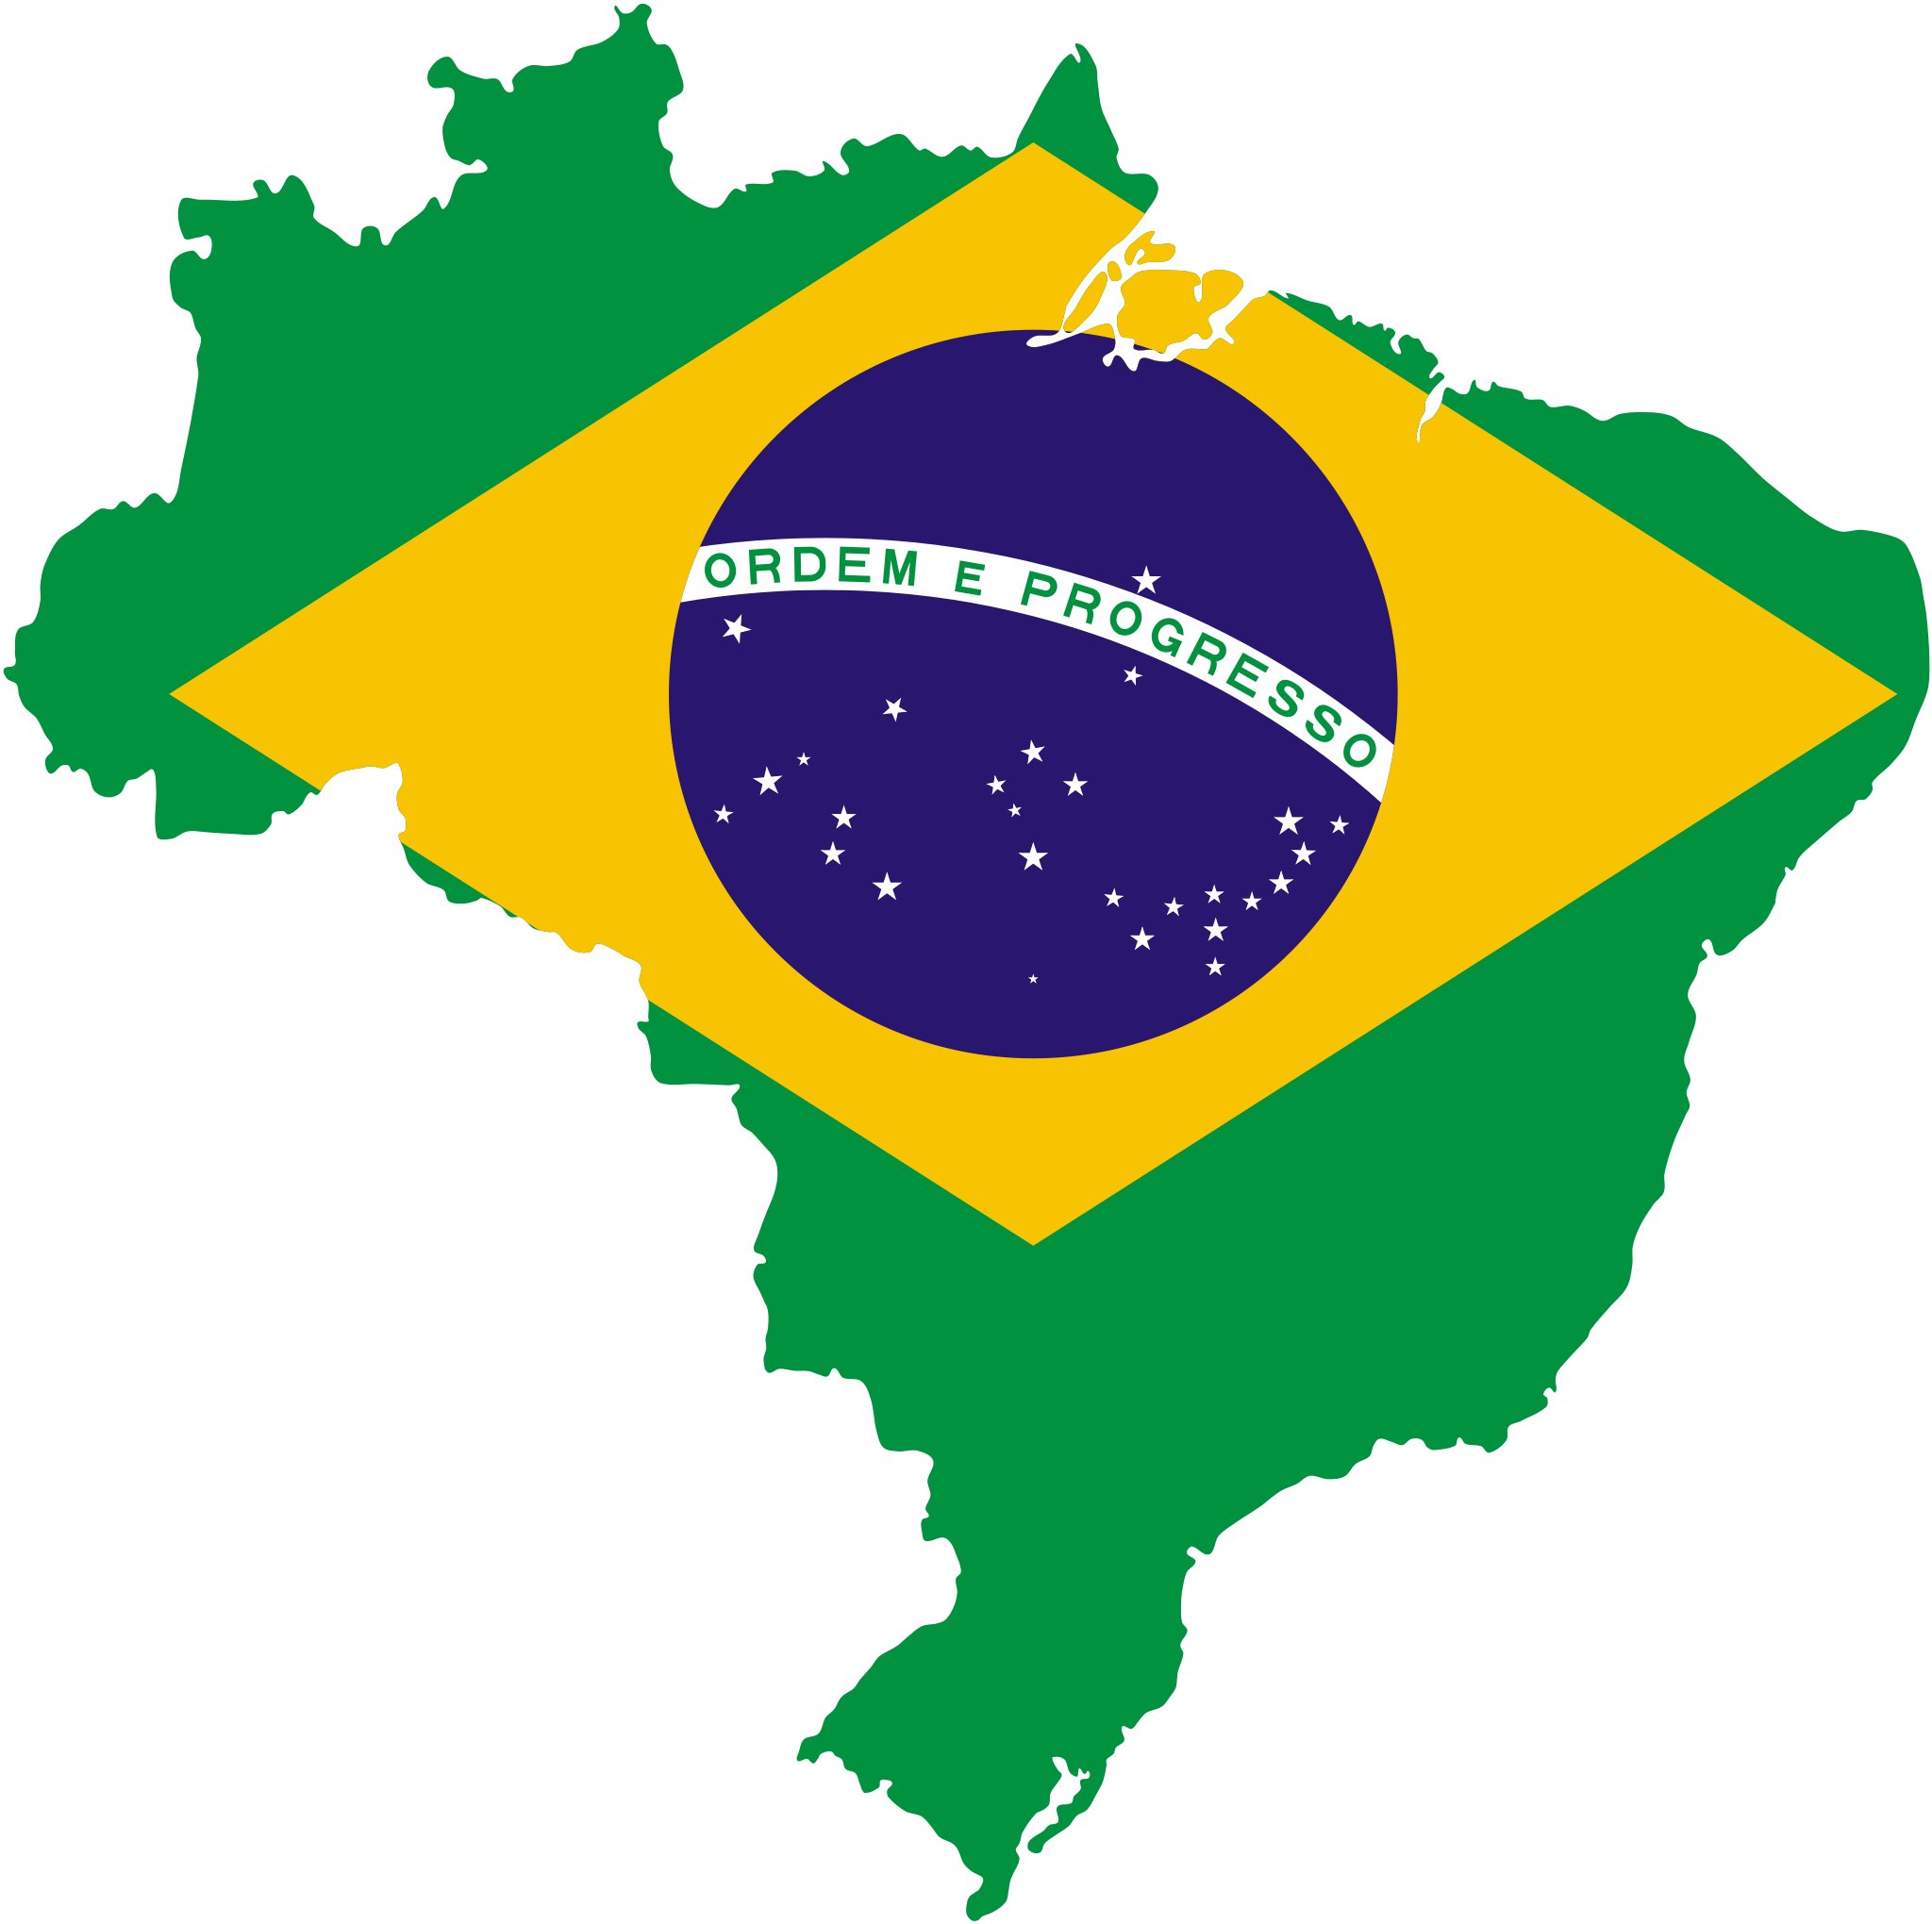 Brazil country png. Rain travels is an